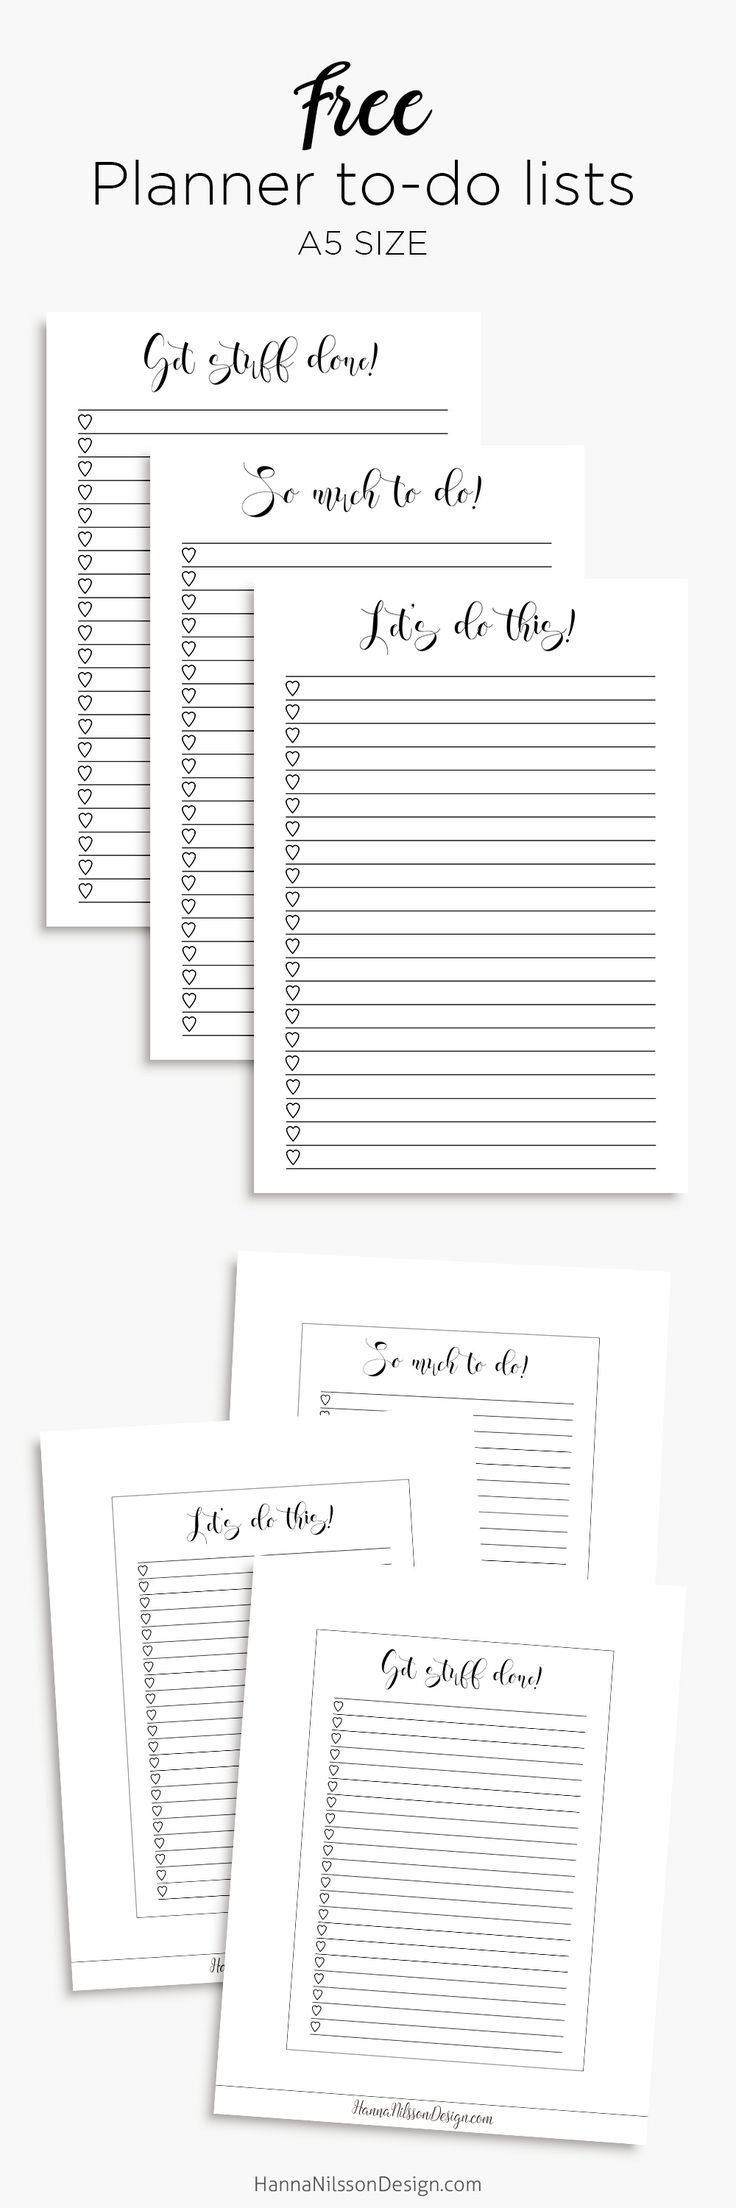 Free Printable Planner To Do Lists {in A5 and Personal size} from Hanna Nilsson Design {newsletter subscription required}